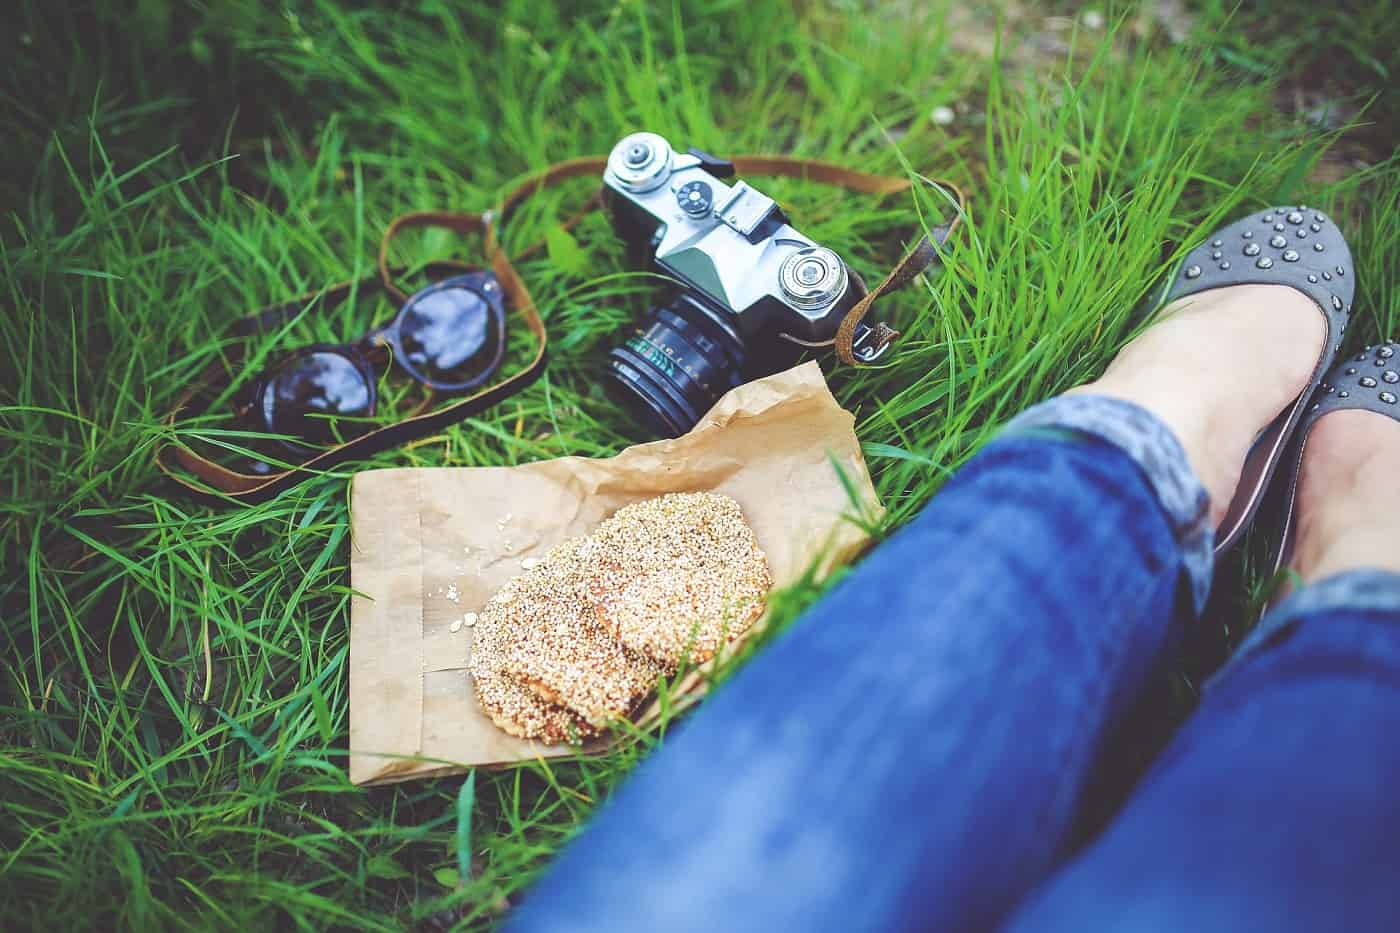 Woman sitting in grass next to two cookies - Self-trust and compassion